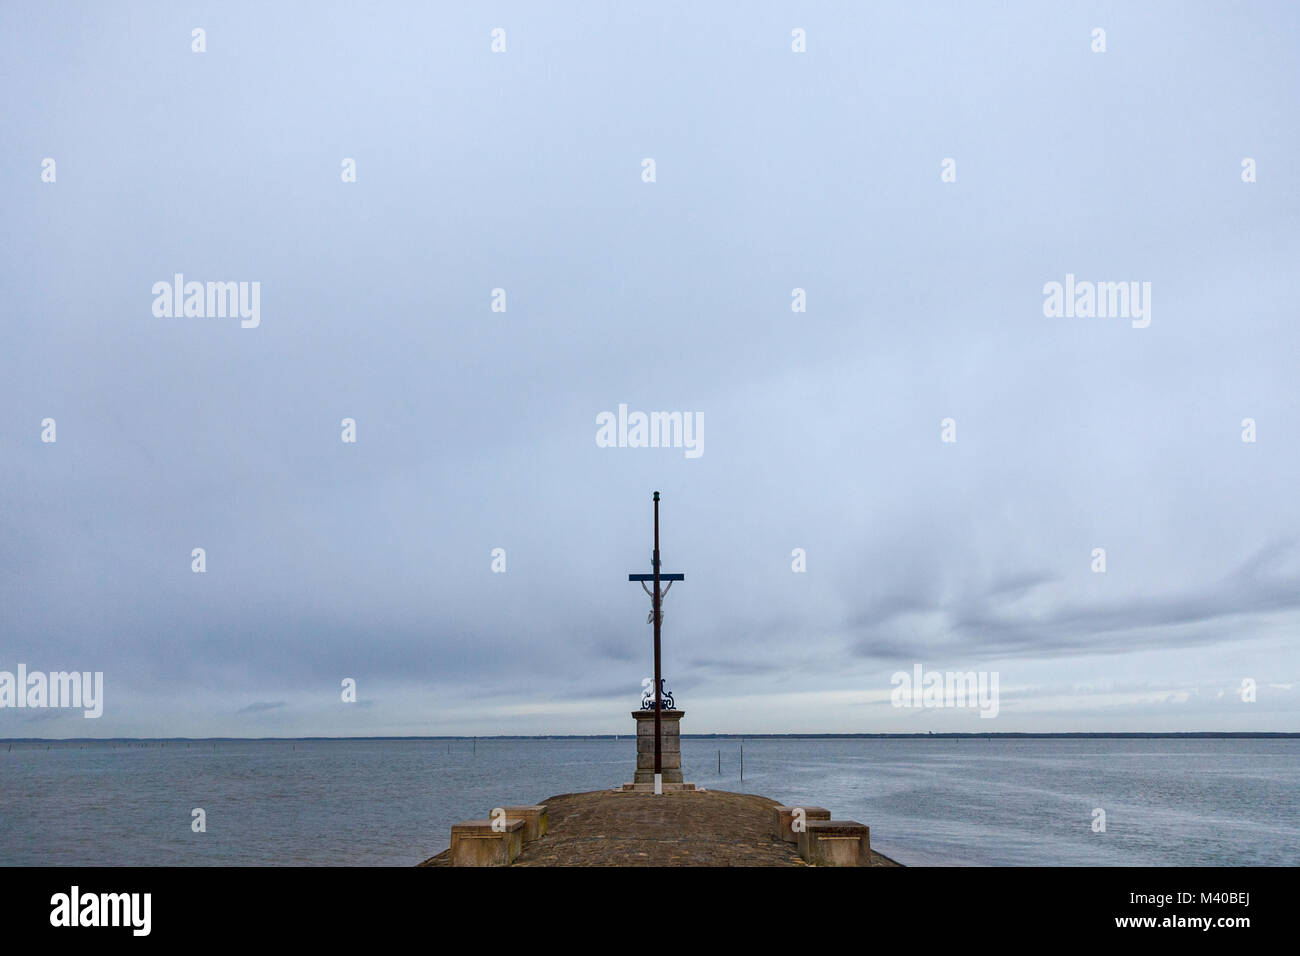 Sailors Cross (Croix des Marins) during a cloudy rainy afternoon in Gujan Mestras, France, on Bassin d'Arcachon. - Stock Image